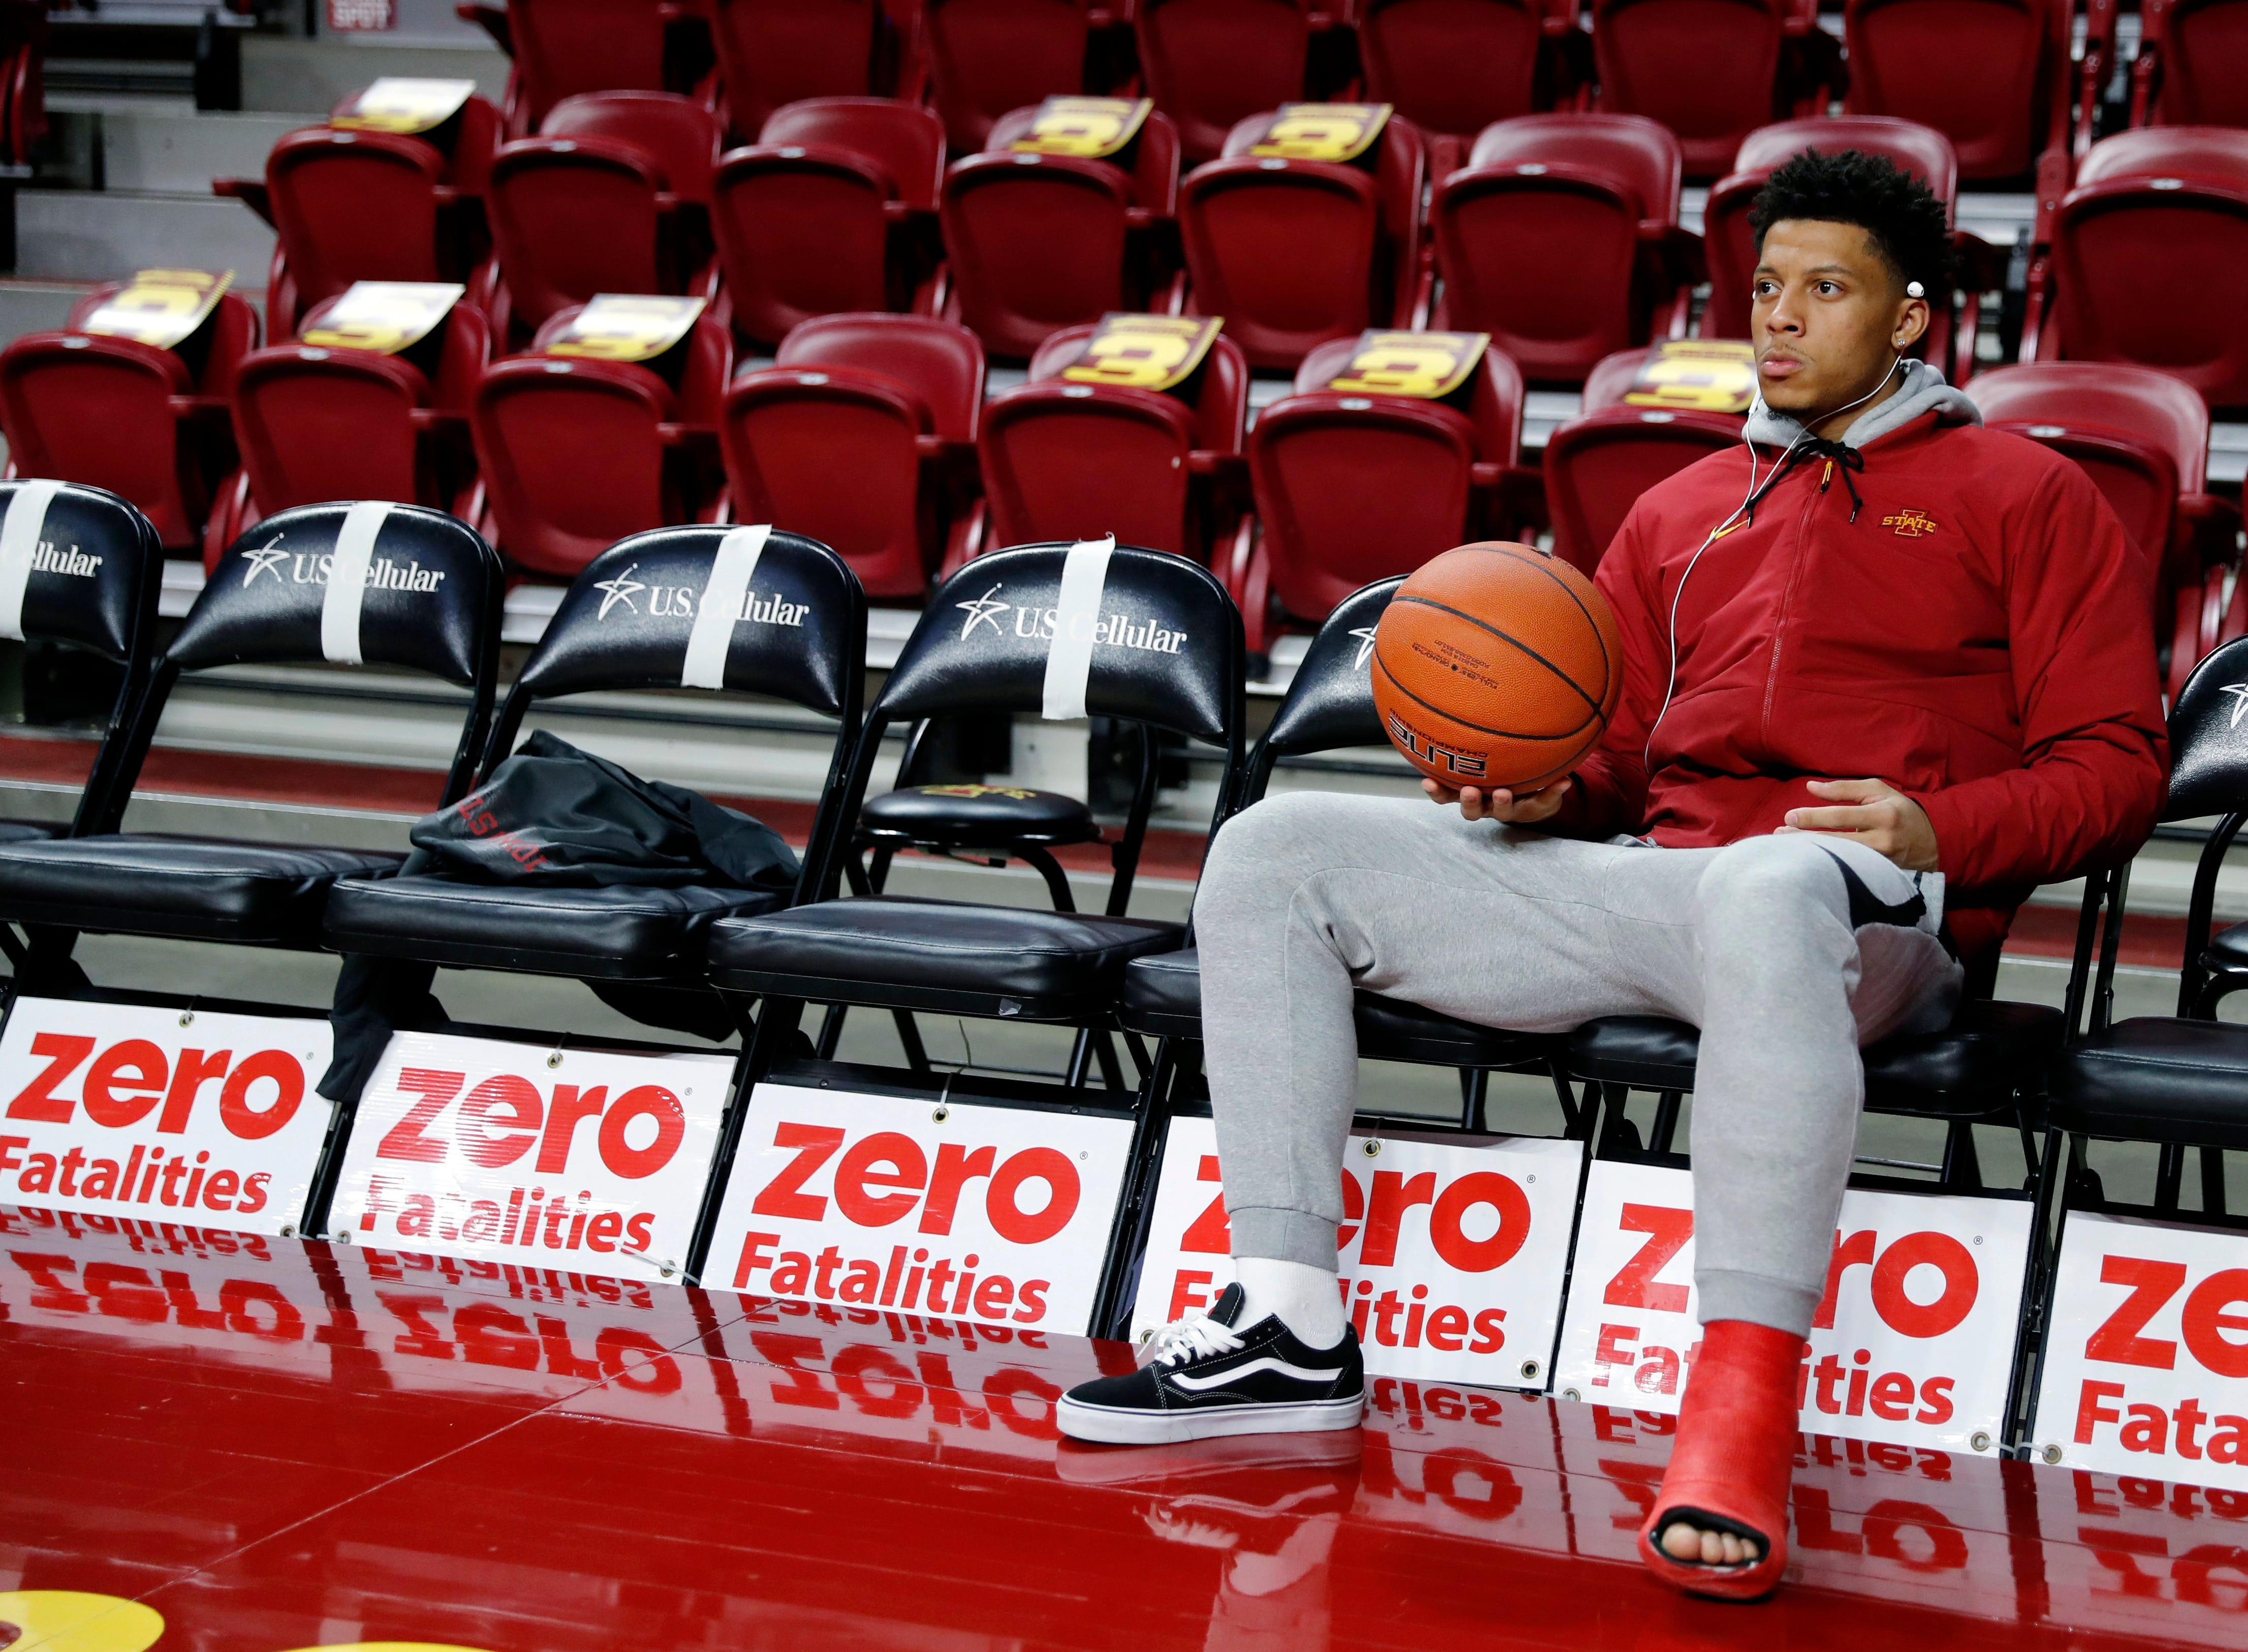 Injured Iowa State guard Lindell Wigginton sits on the bench before an NCAA college basketball game against Missouri, Friday, Nov. 9, 2018, in Ames, Iowa.